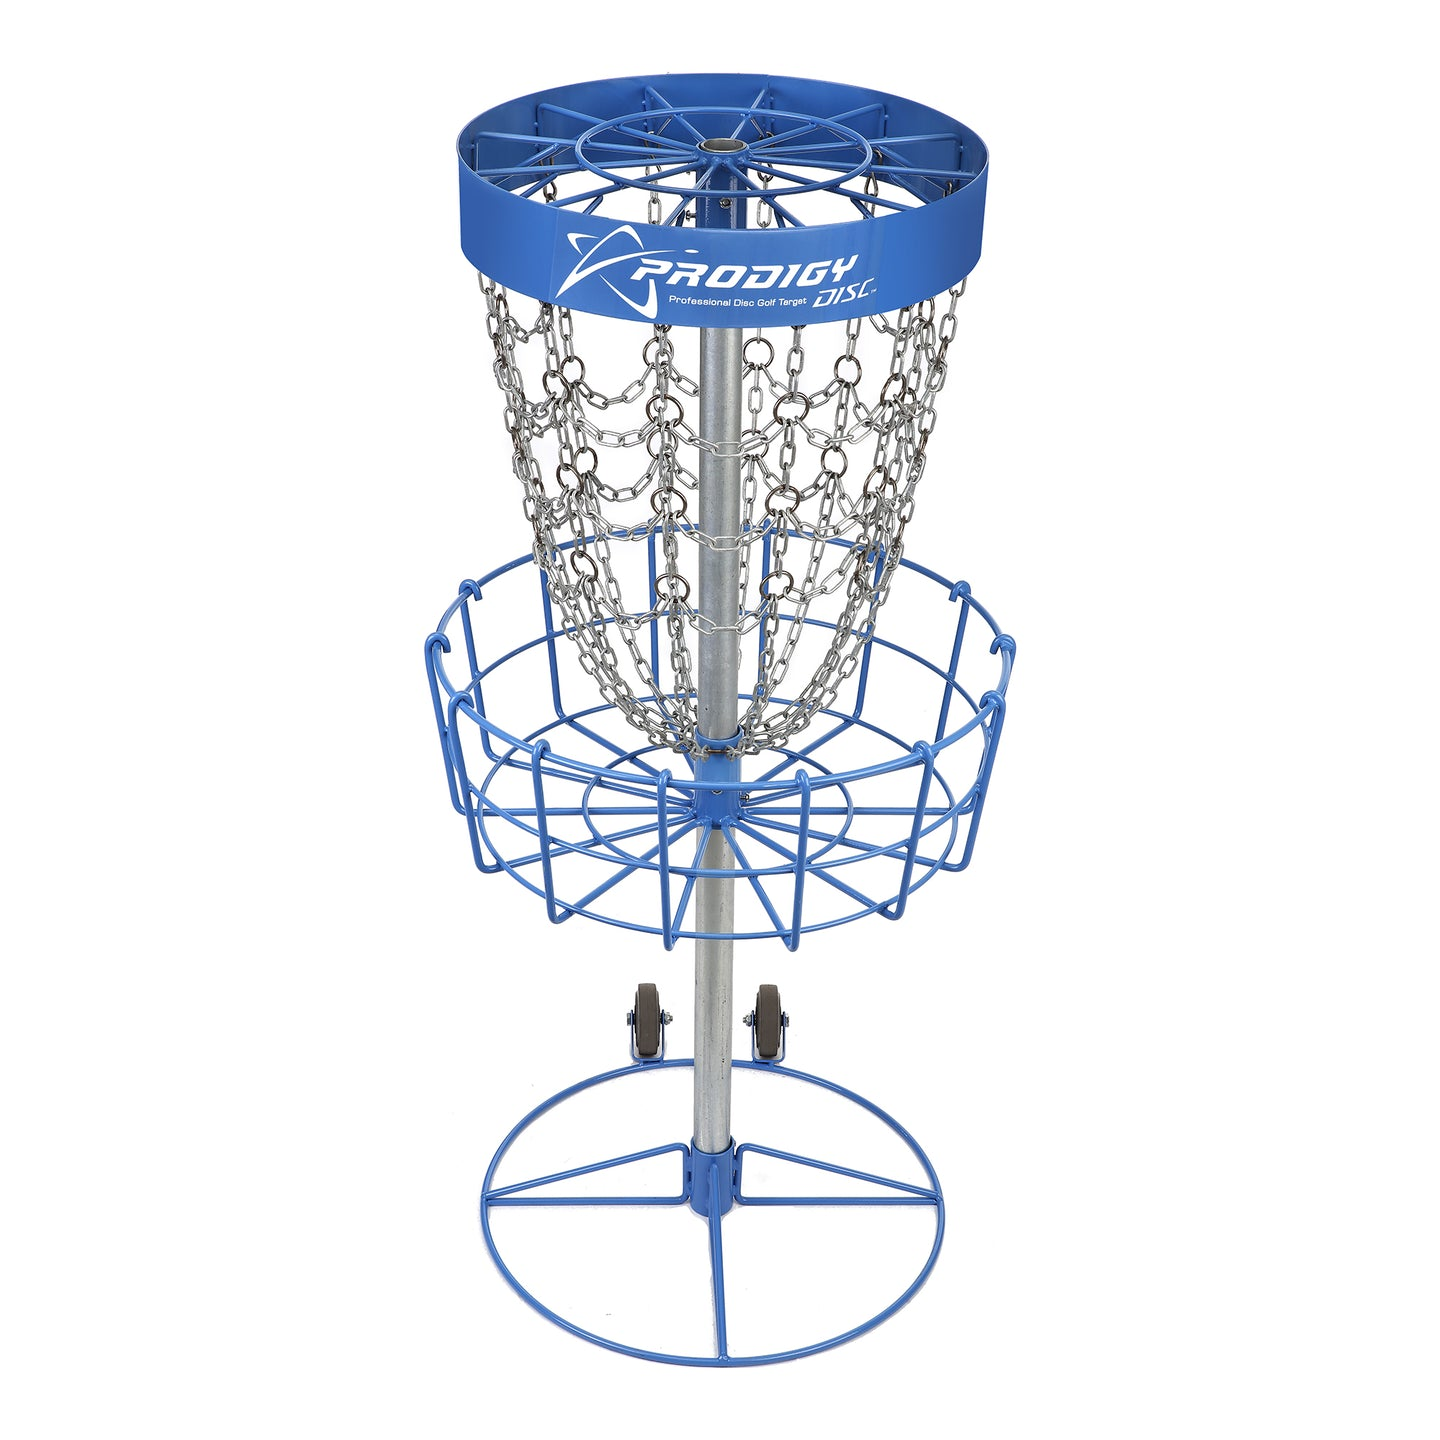 Professional Level Disc Golf Targets